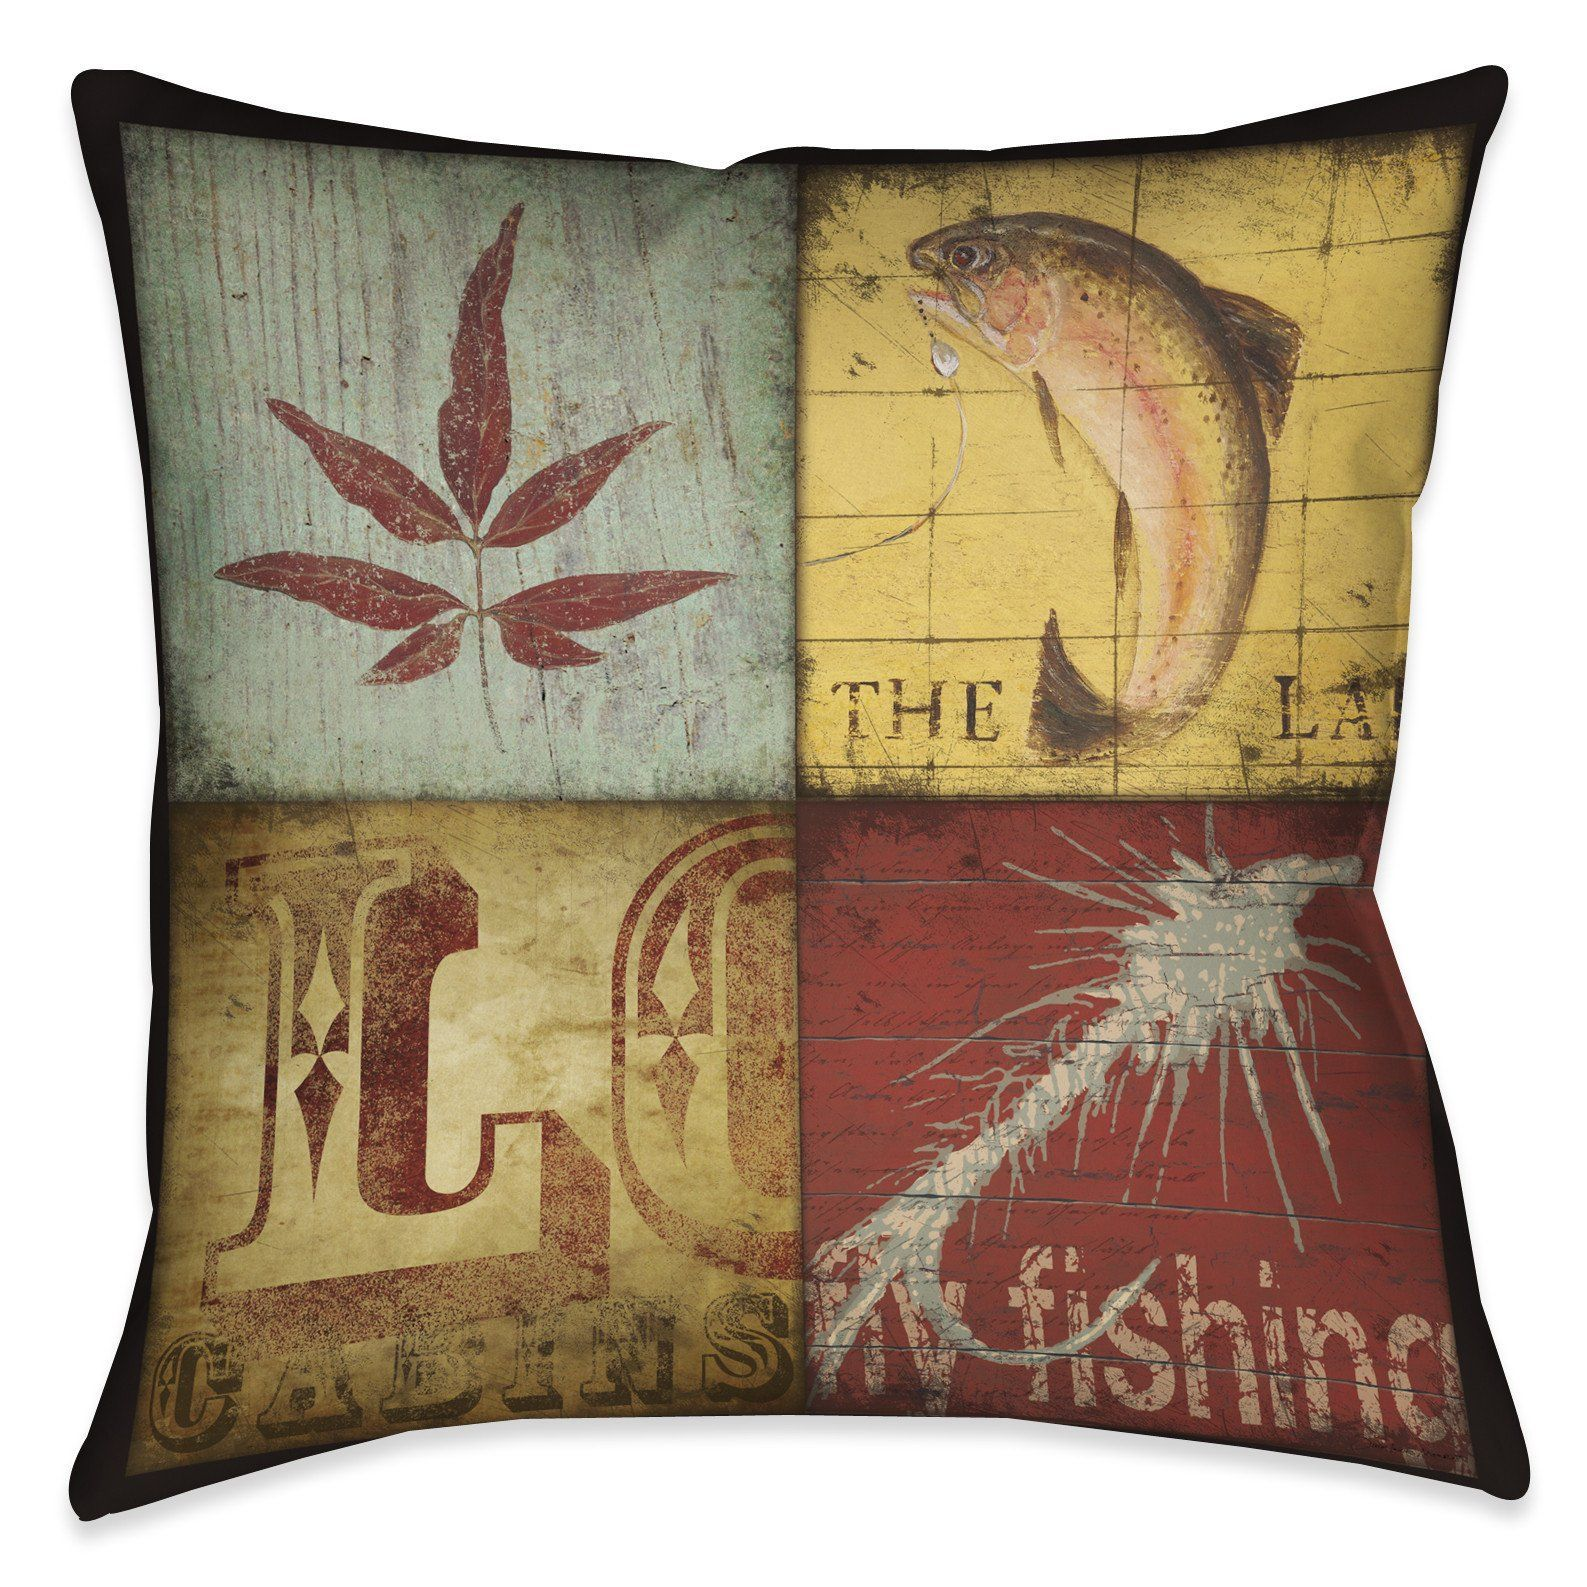 Awe Inspiring 10 Healthy Clever Ideas Large Decorative Pillows Crochet Andrewgaddart Wooden Chair Designs For Living Room Andrewgaddartcom